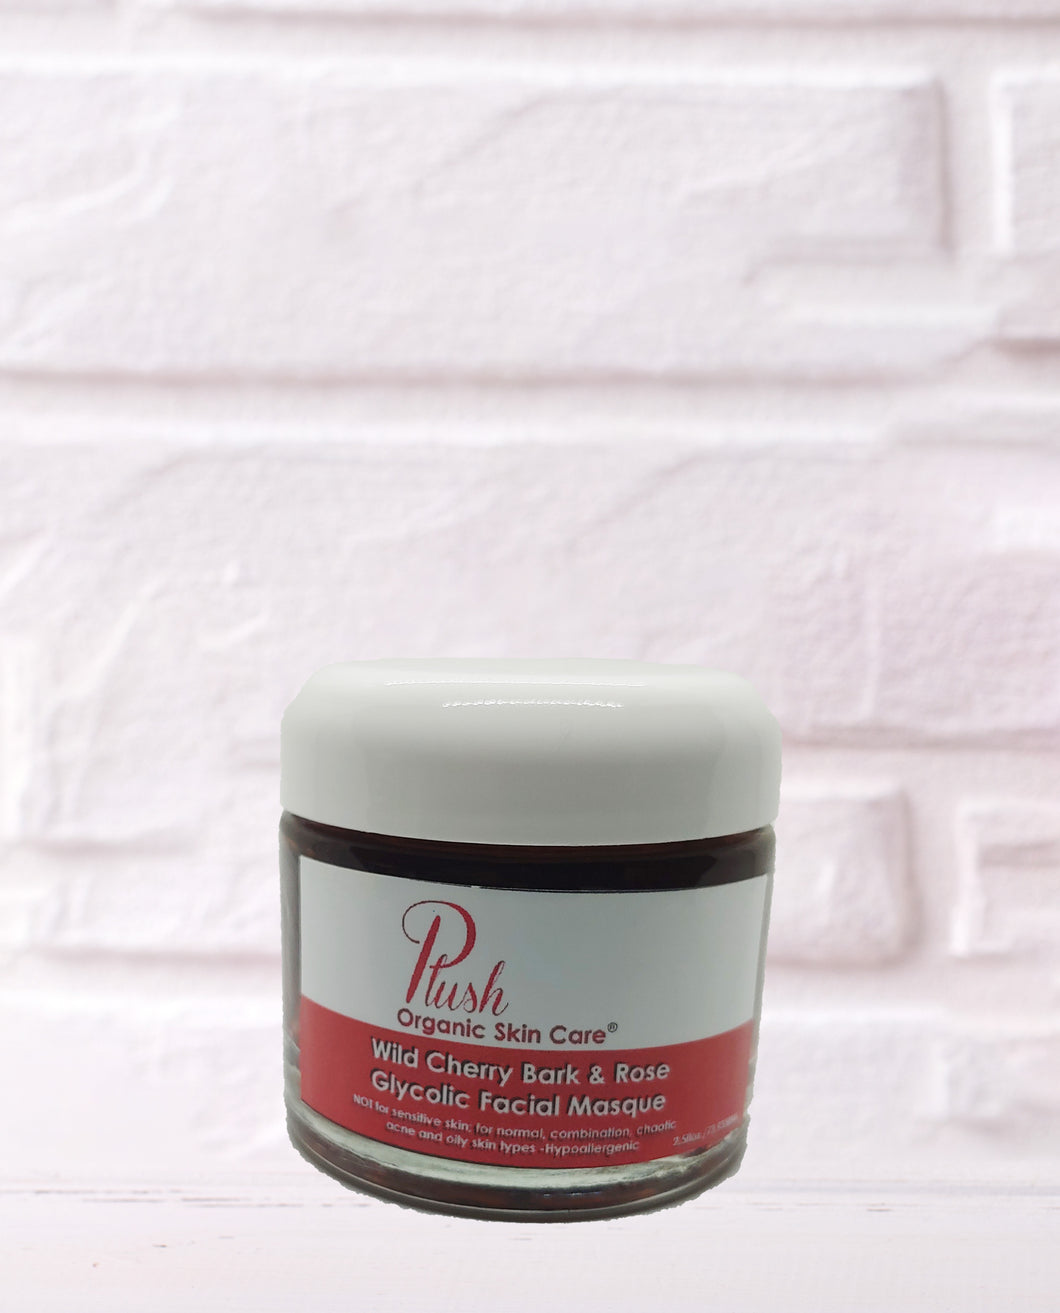 Wild Cherry Bark & Rose Glycolic Masque